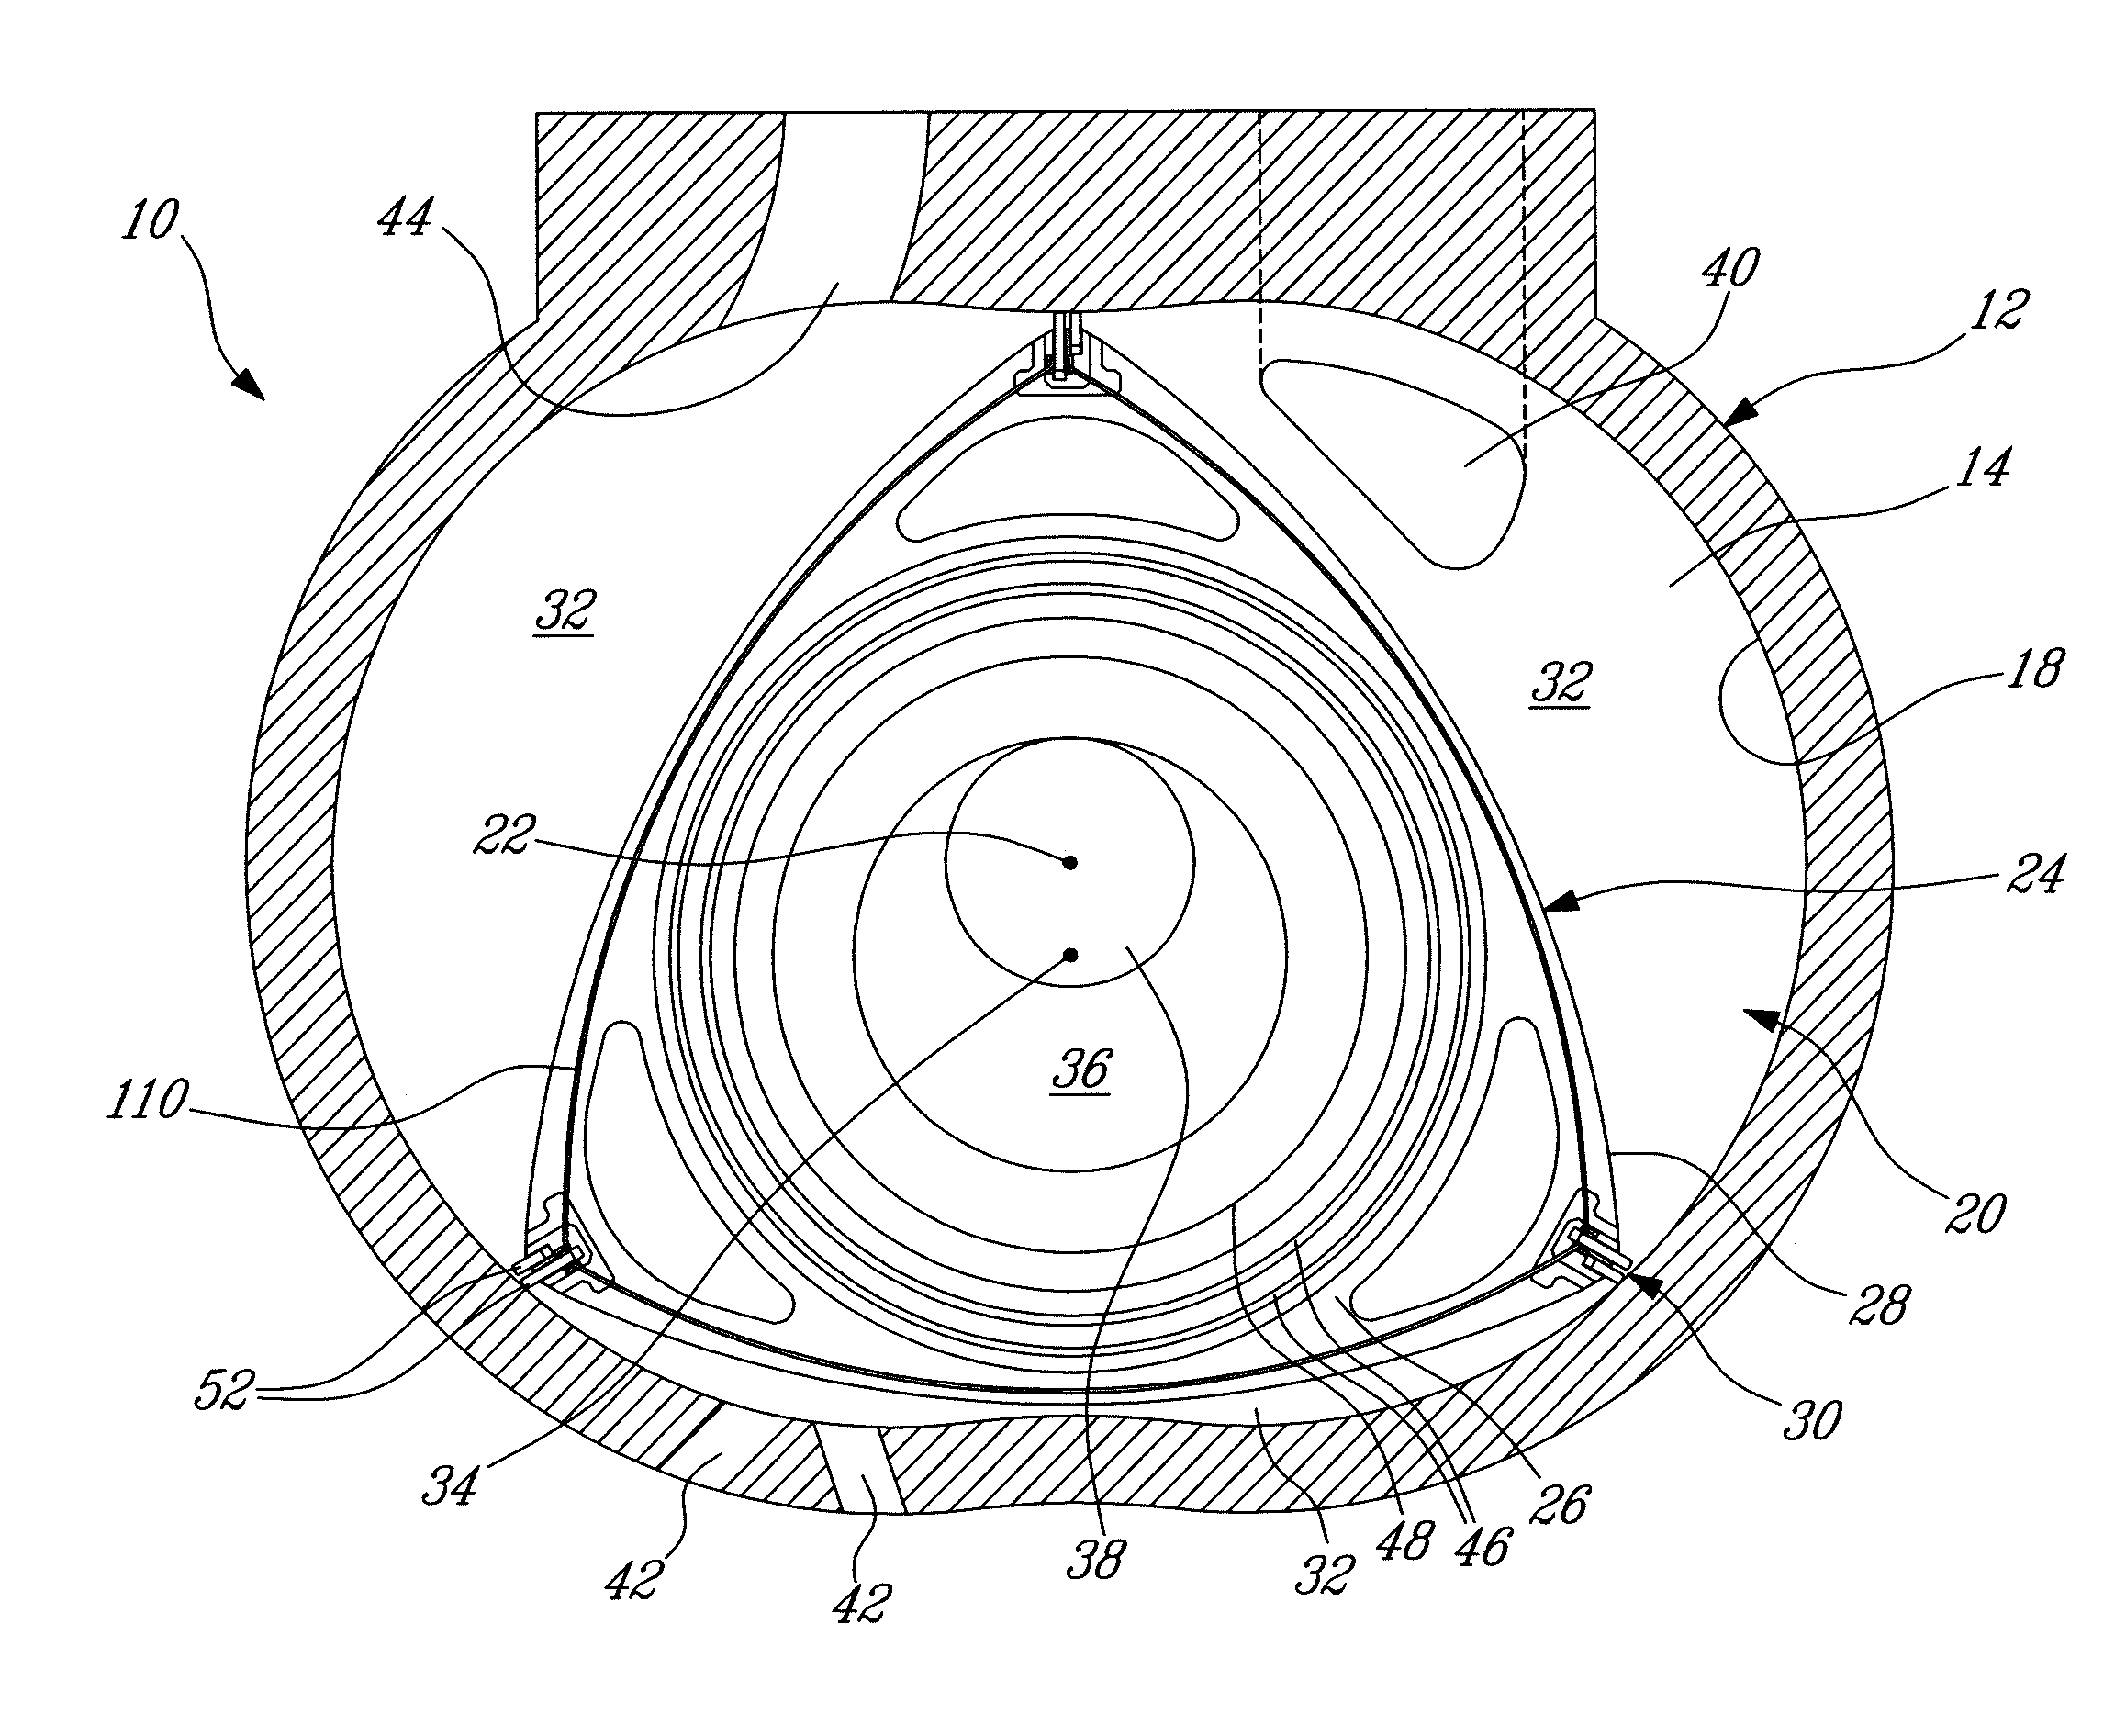 patent us20130028775 apex seal arrangement for rotary combustion engine patents